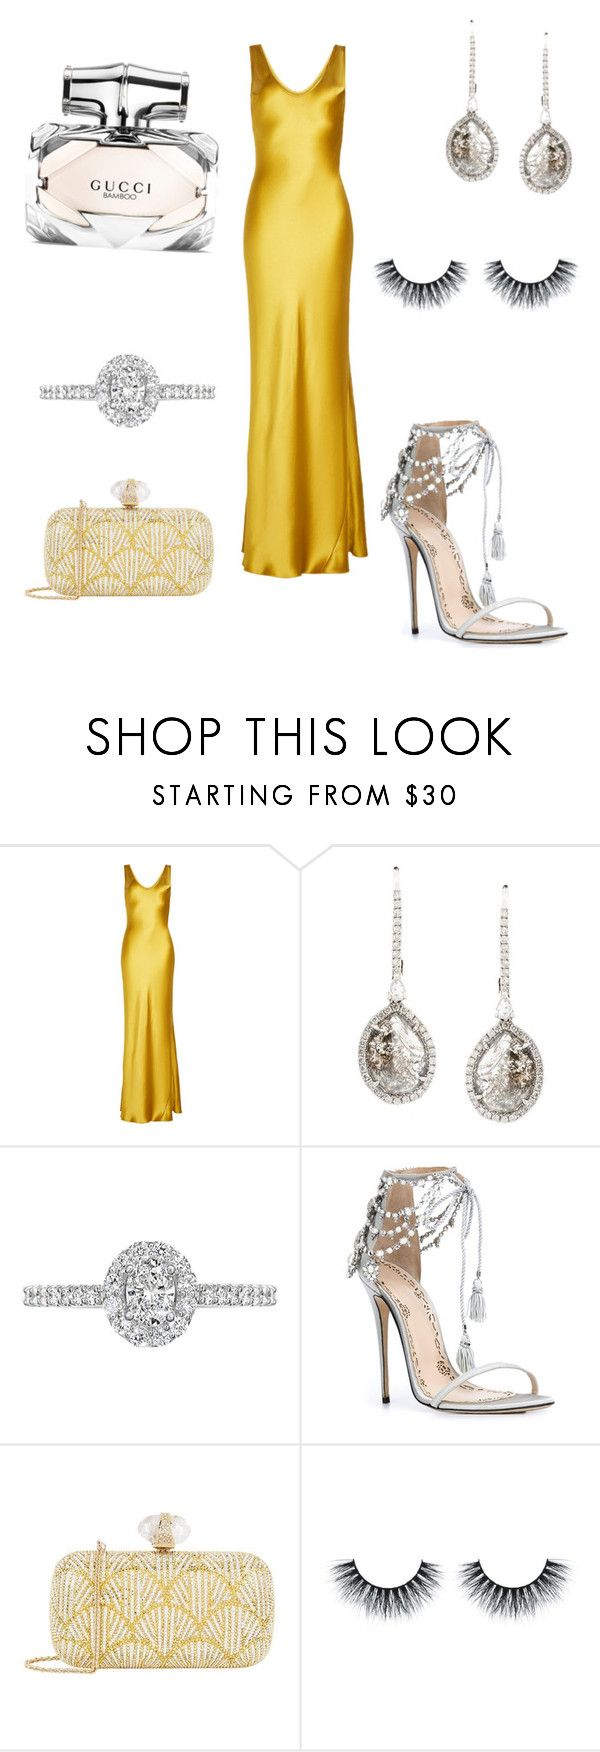 """""""Untitled #20"""" by em2017 ❤ liked on Polyvore featuring Galvan, Saqqara, EWA, Marchesa, Judith Leiber and Gucci"""